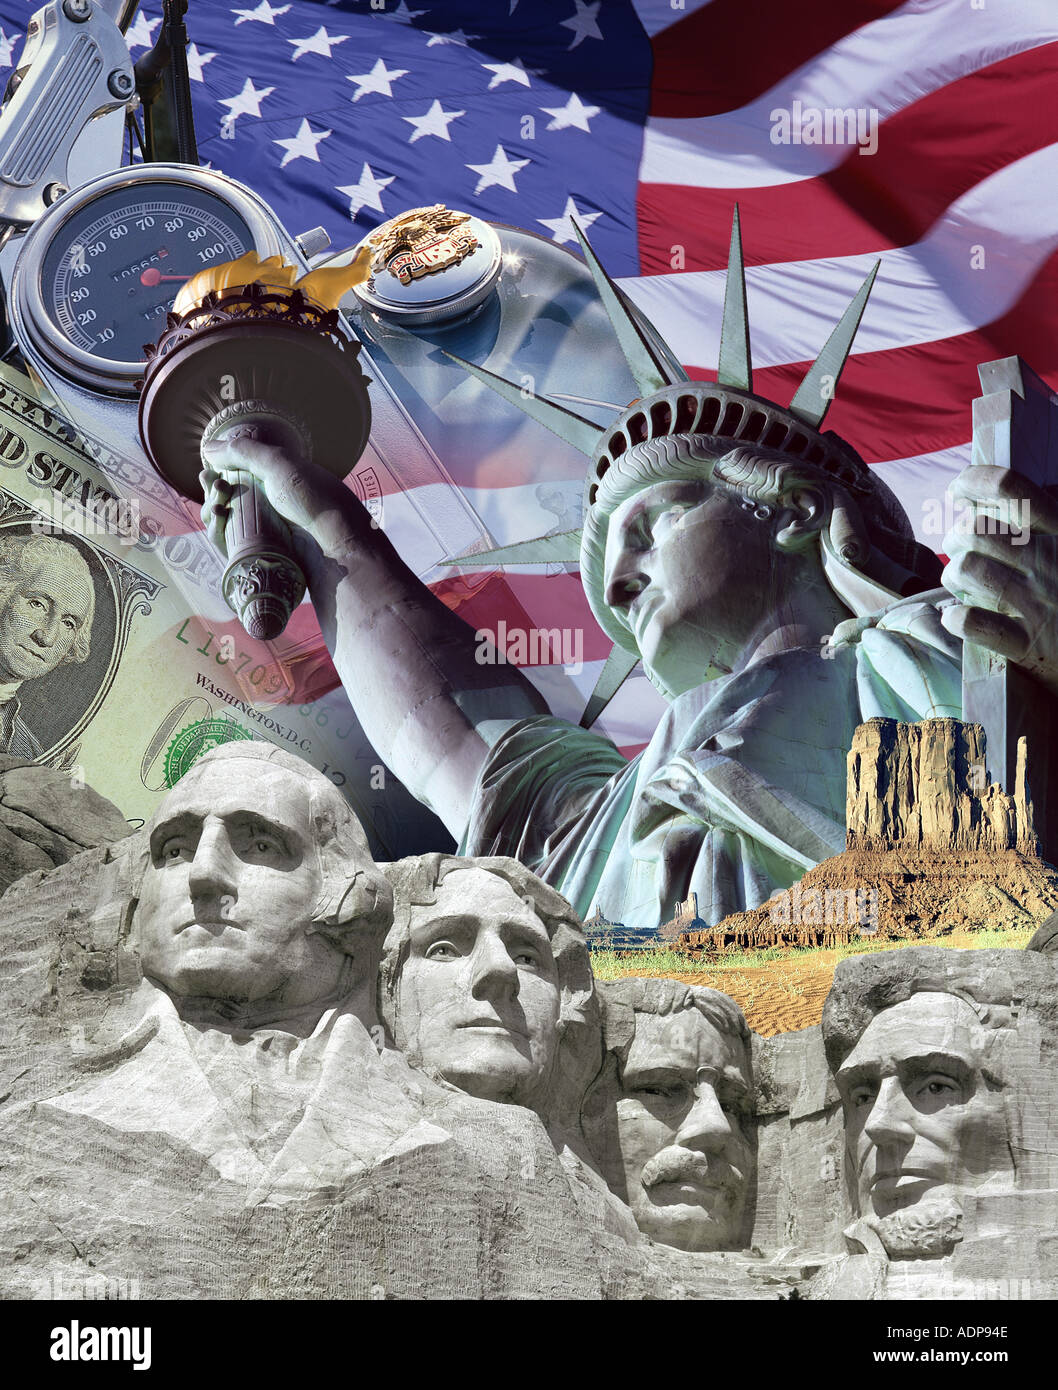 USA - AMERICANA : Travel Concept Photo Stock